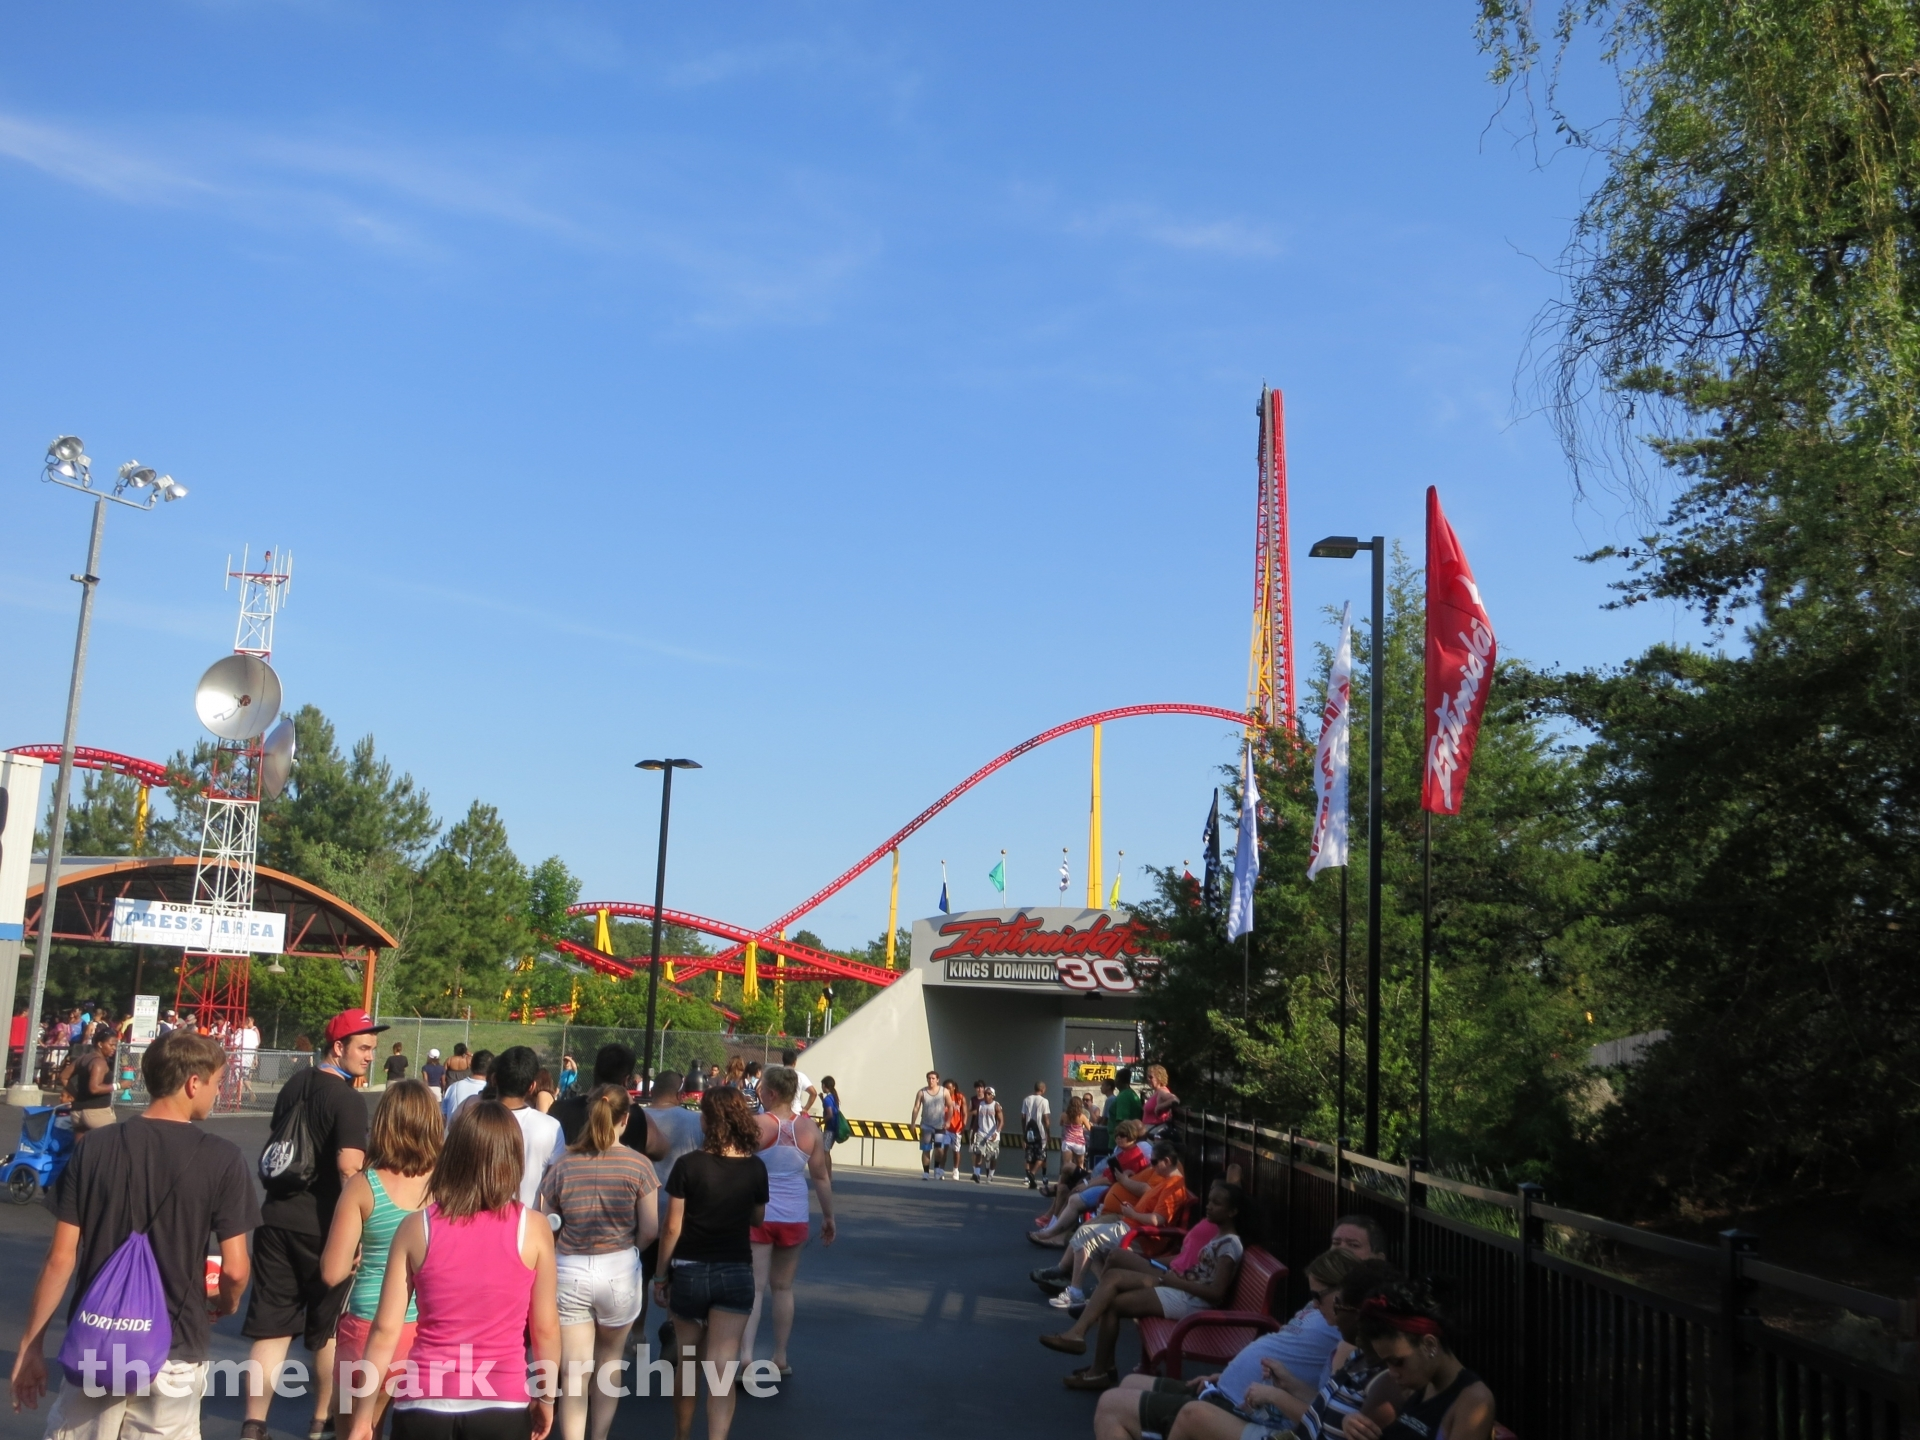 Intimidator 305 at Kings Dominion